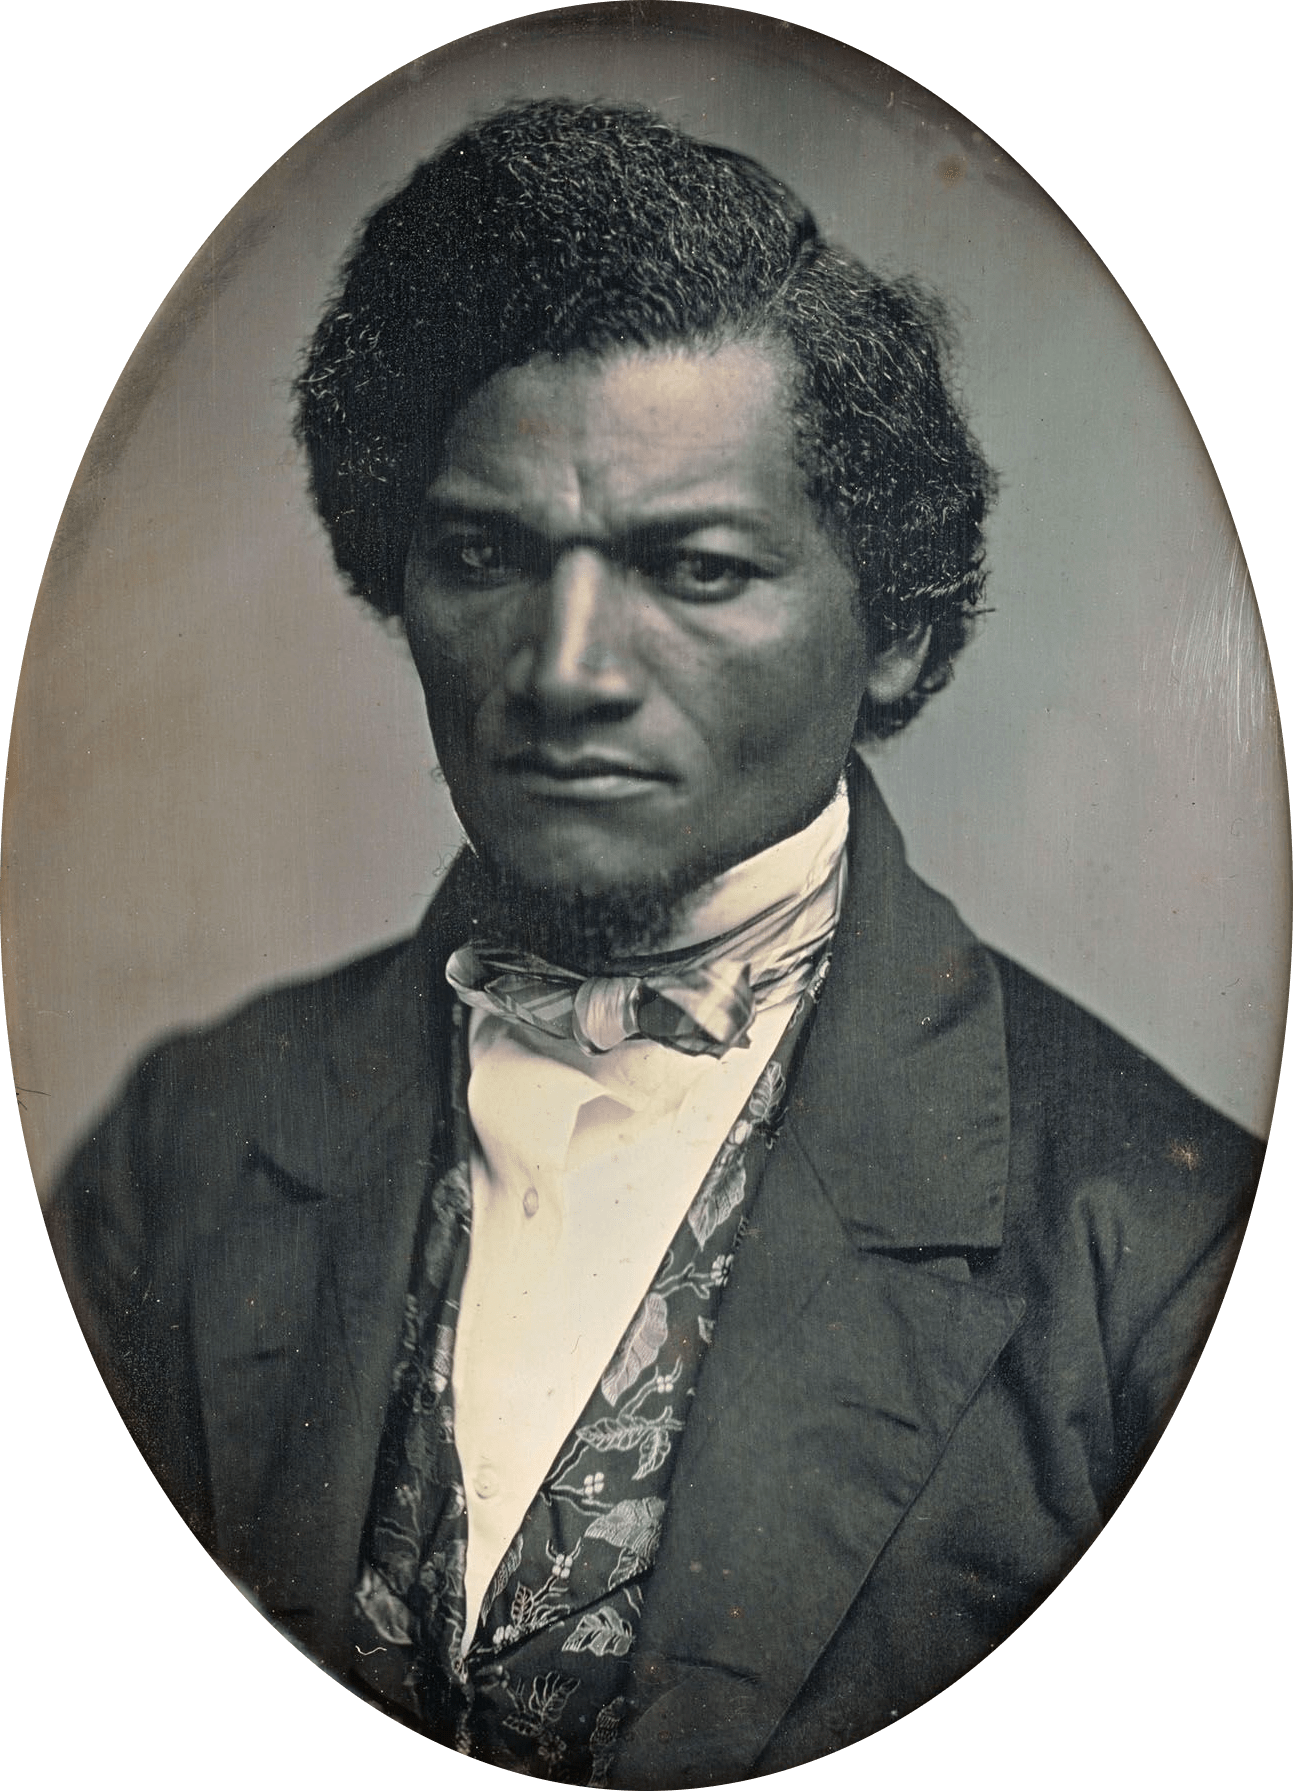 https://i2.wp.com/upload.wikimedia.org/wikipedia/commons/2/21/Frederick_Douglass_by_Samuel_J_Miller,_1847-52.png